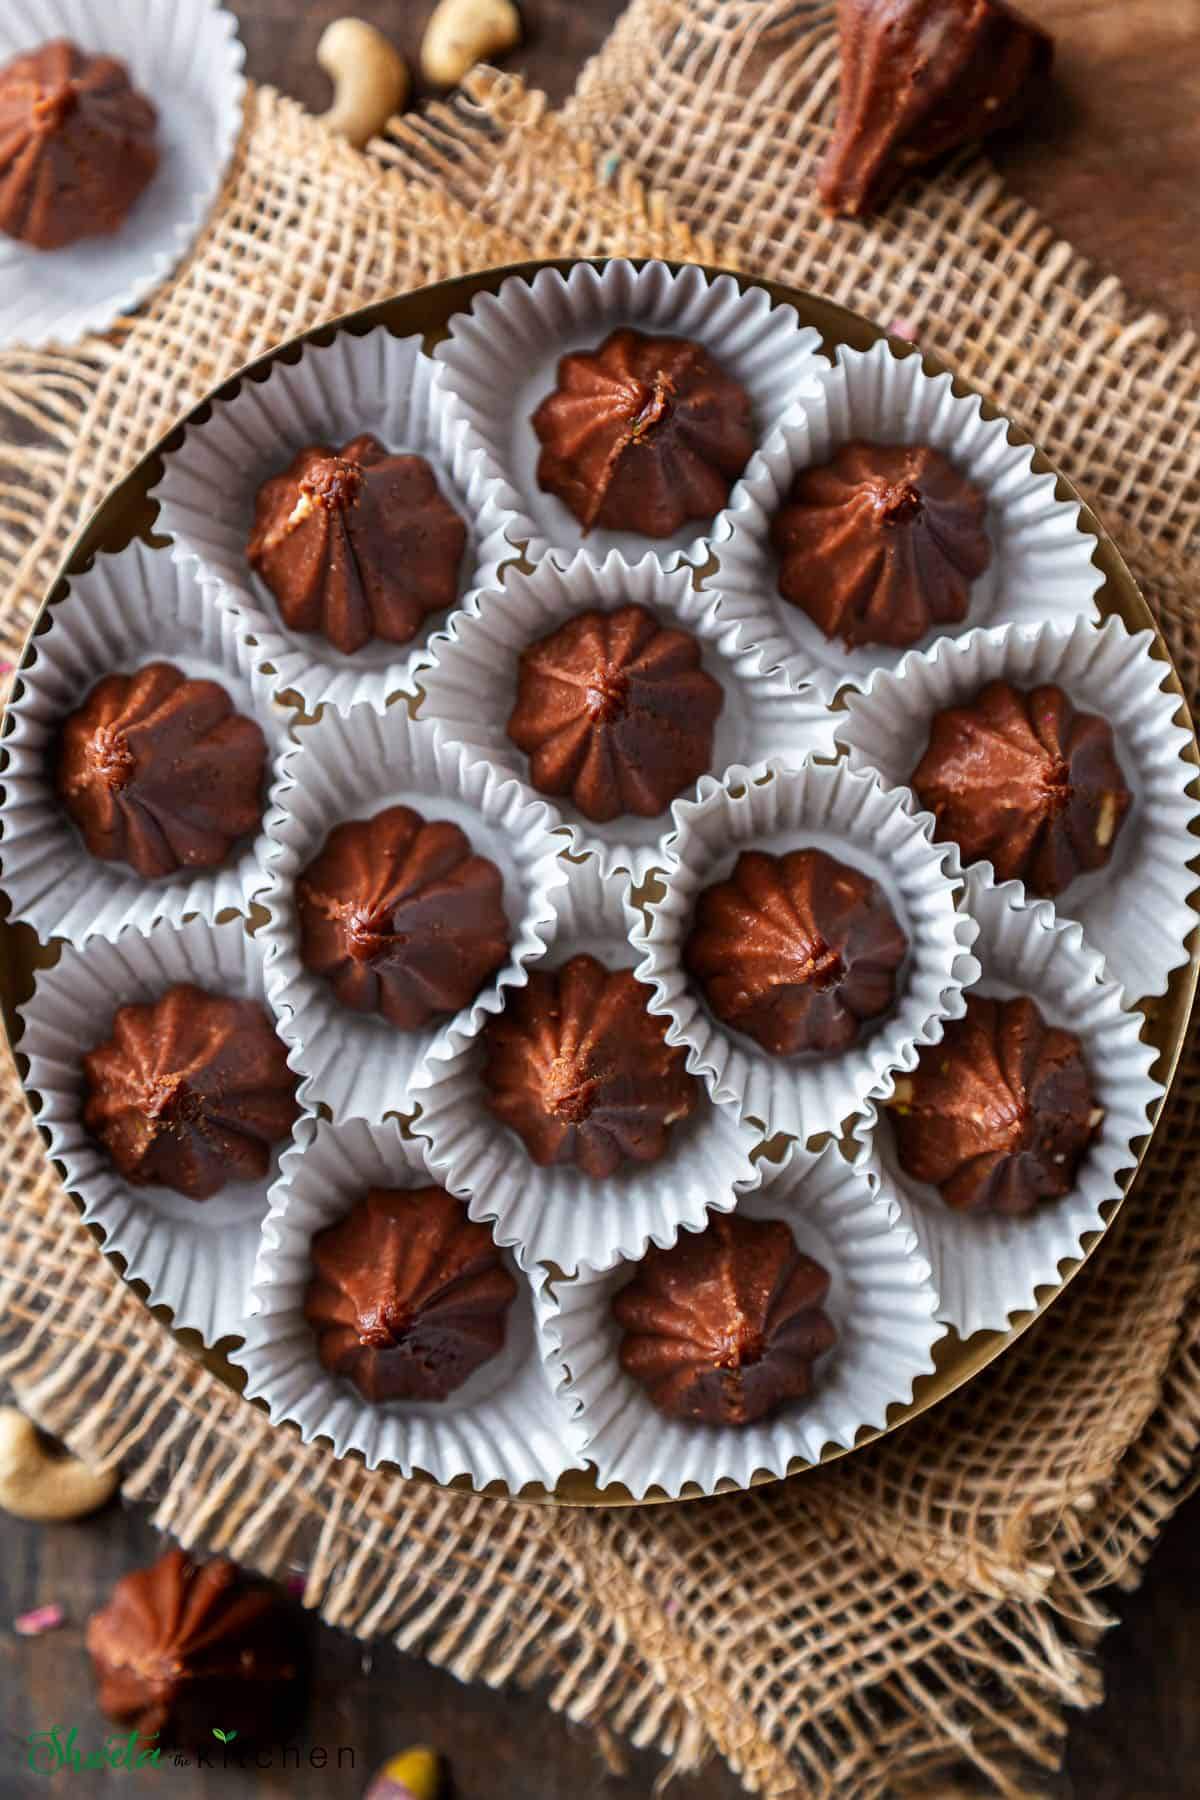 Top view of Chocolate modak in white wrappers arranged on a plate in circular pattern